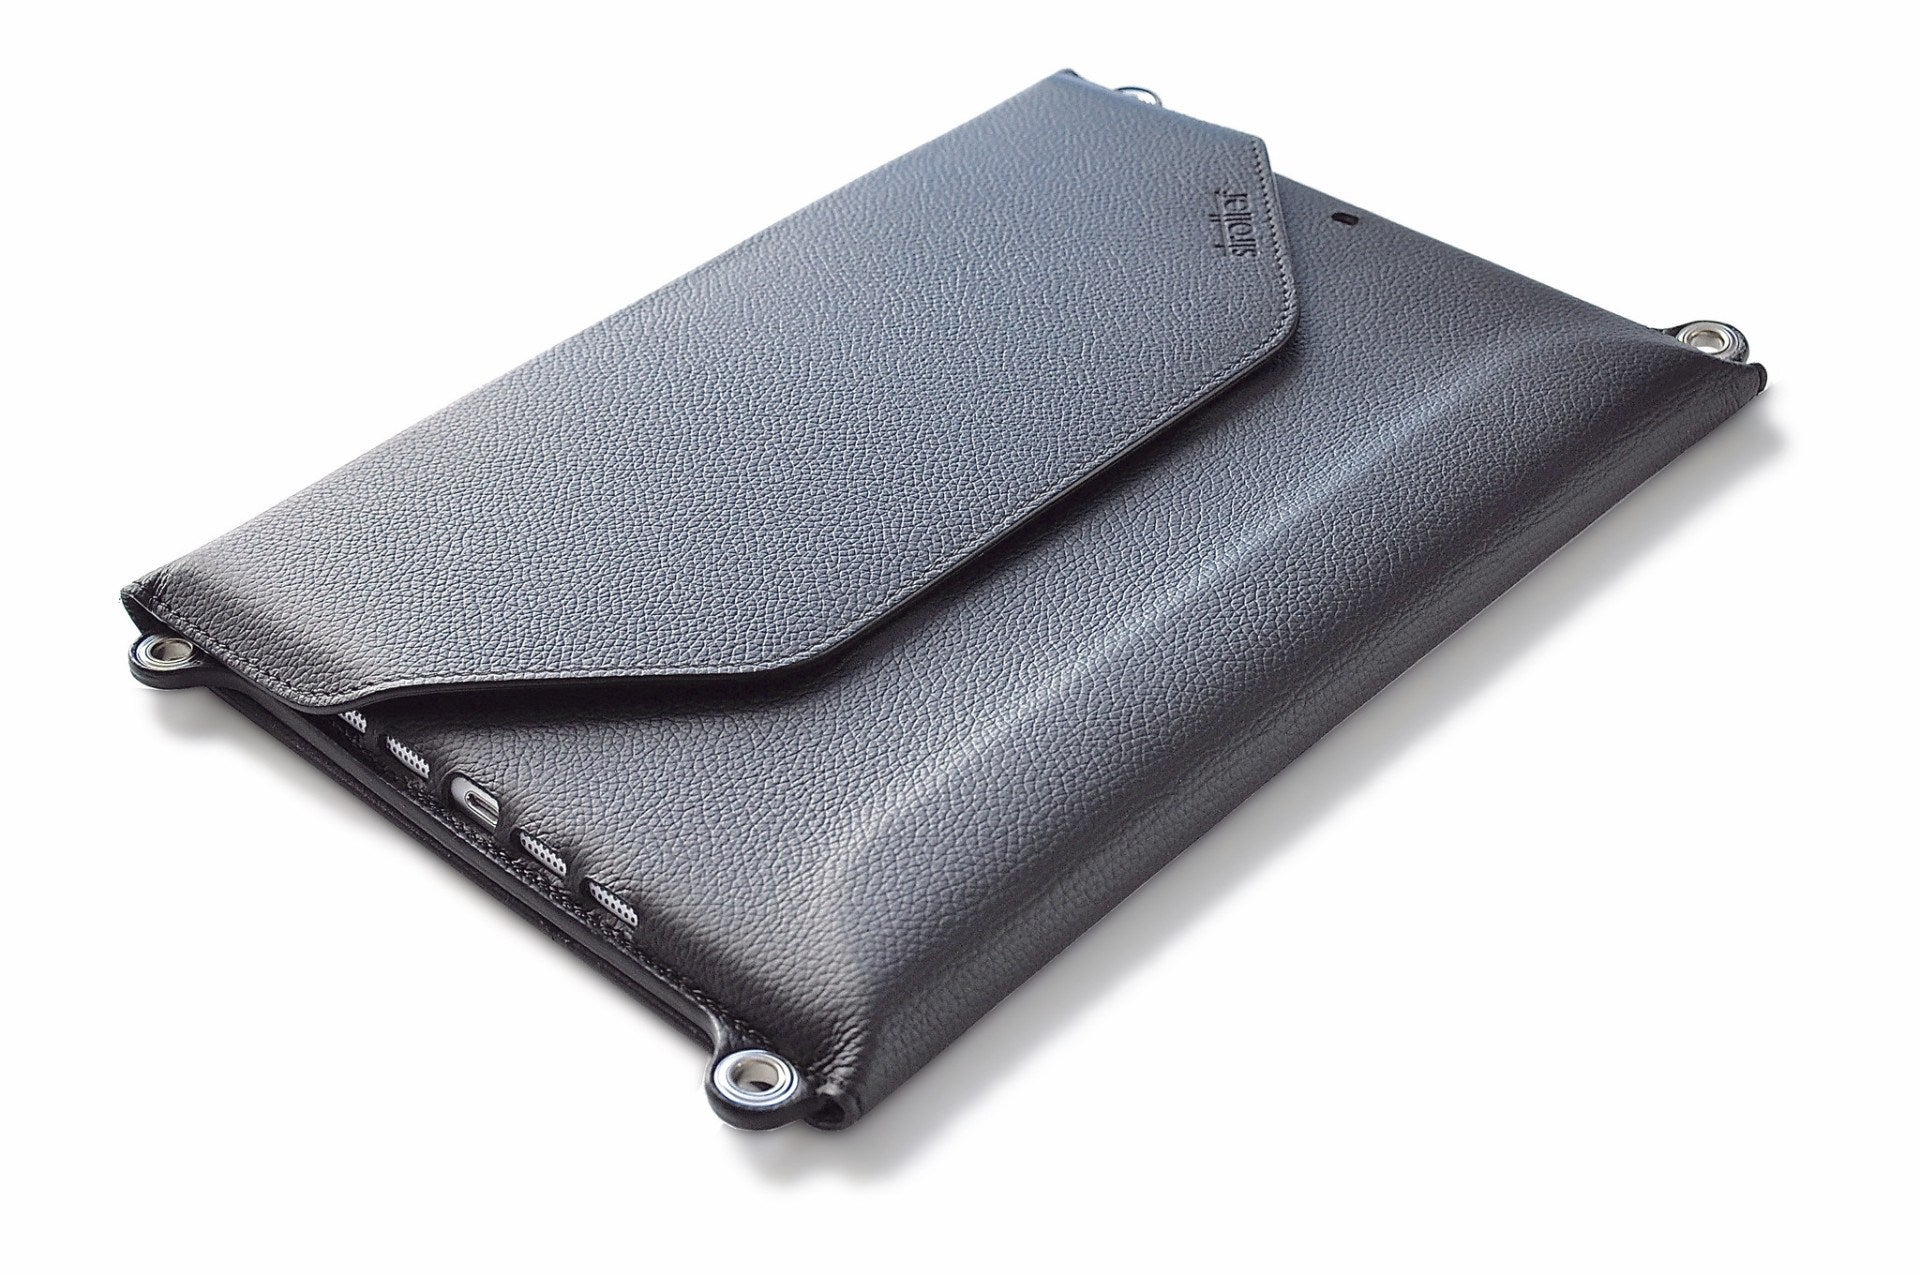 case for iPad Pro 9.7: Across By Strotter